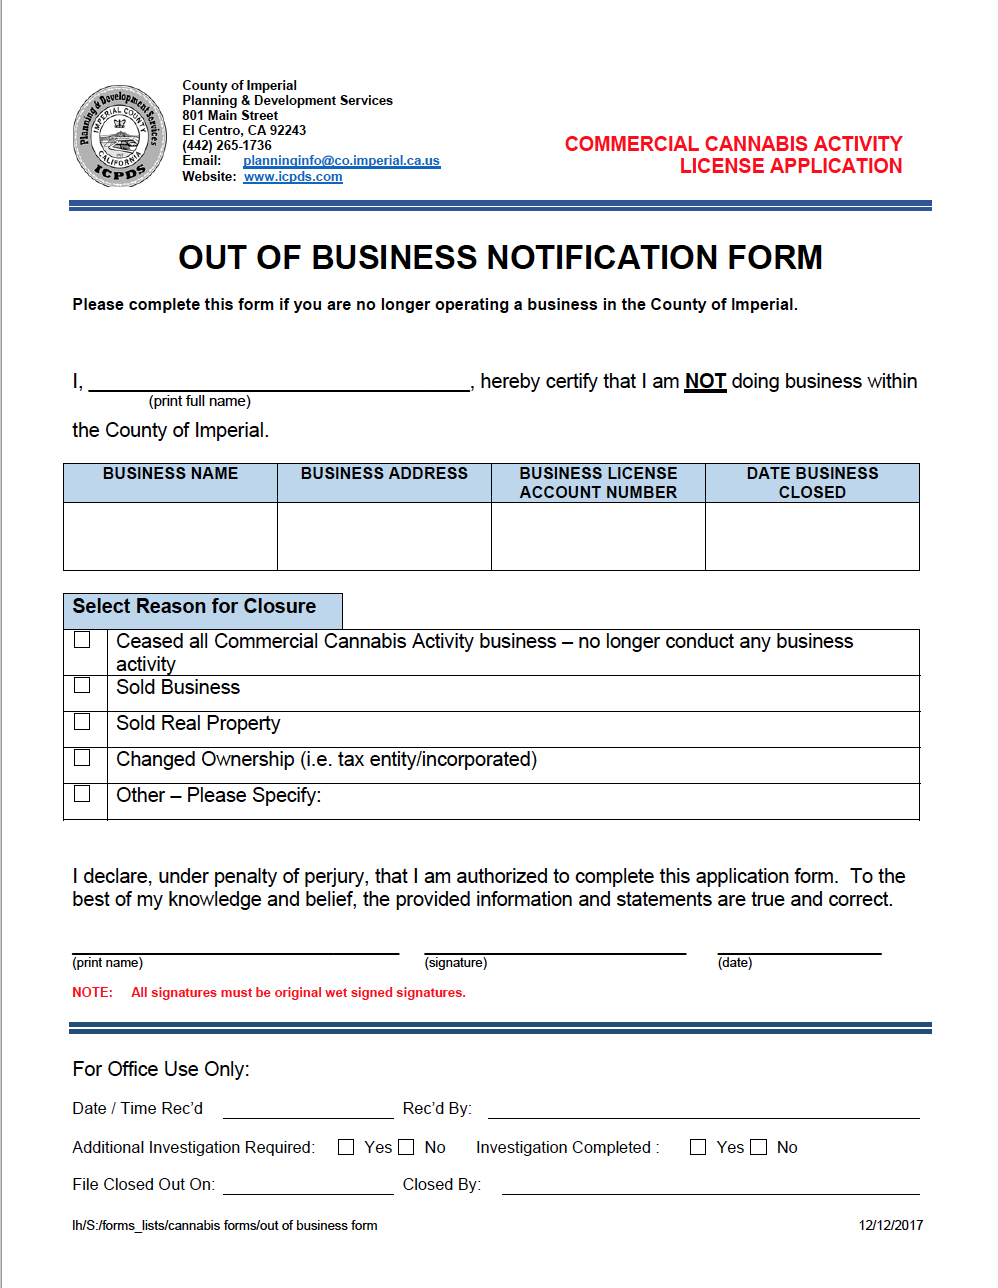 Out of Business Notification.png